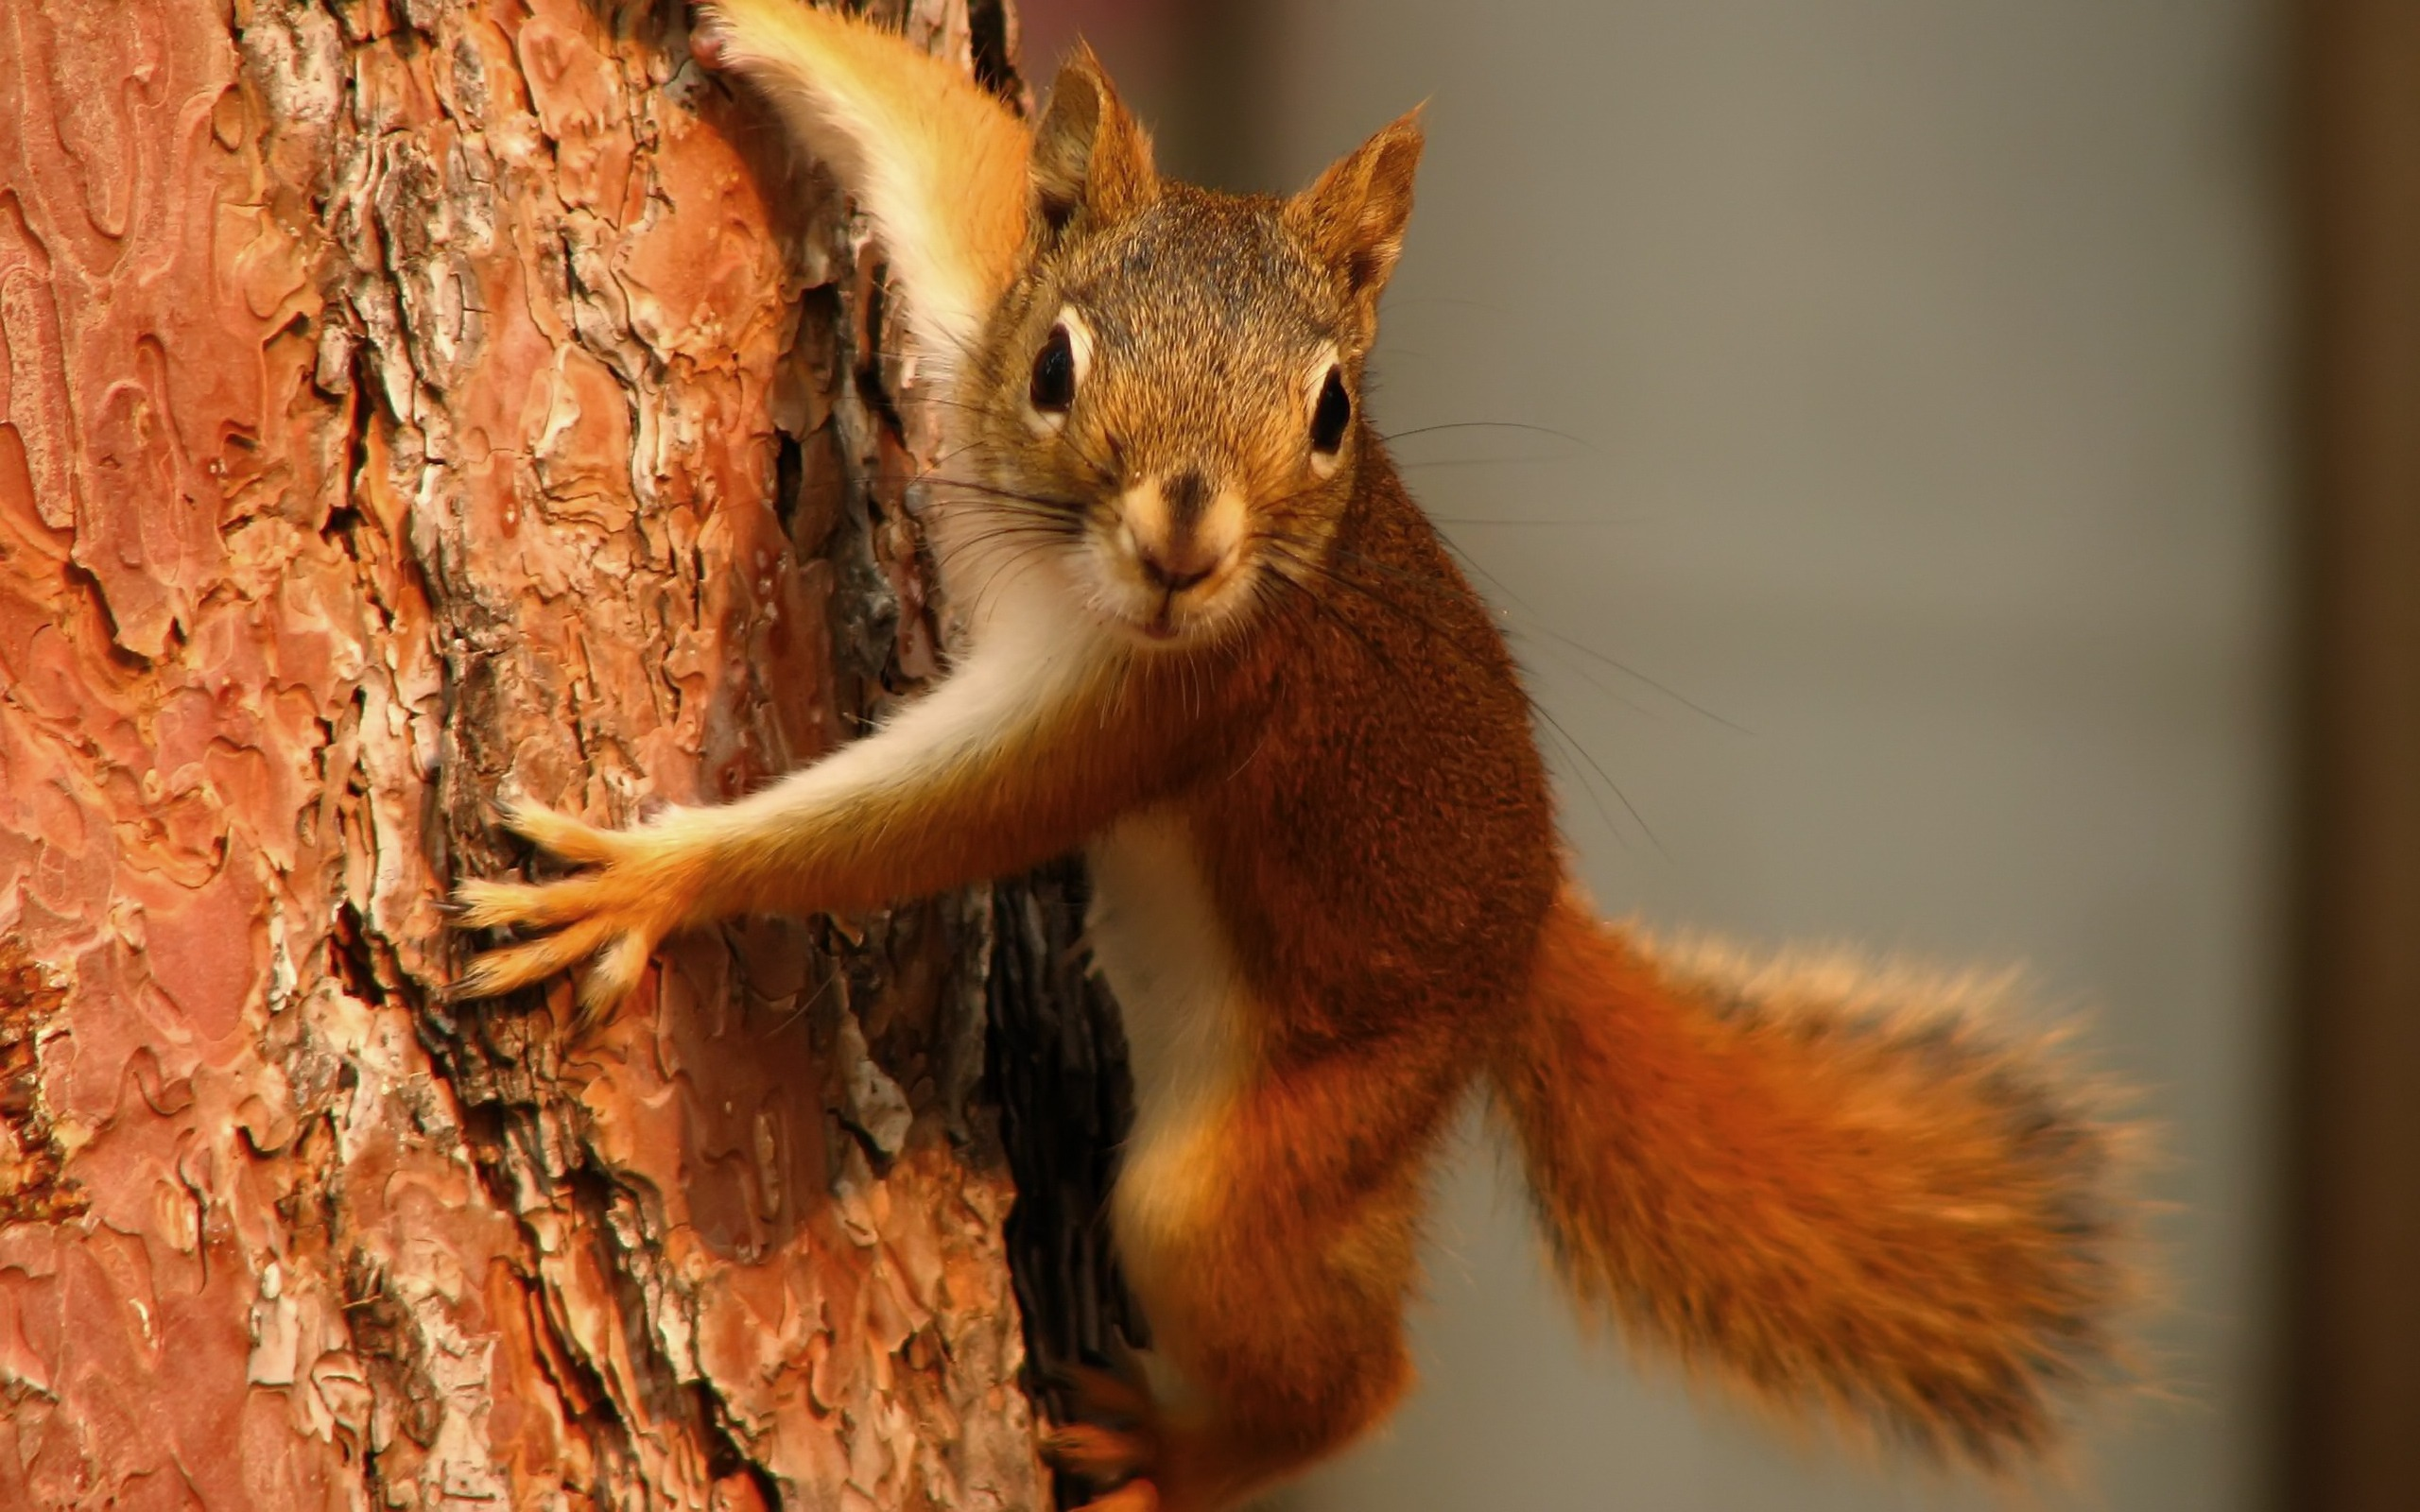 http://s4.picofile.com/file/8179847784/squirrel_wallpaper_other_animals_wallpaper_2560_1600_widescreen_405.jpg